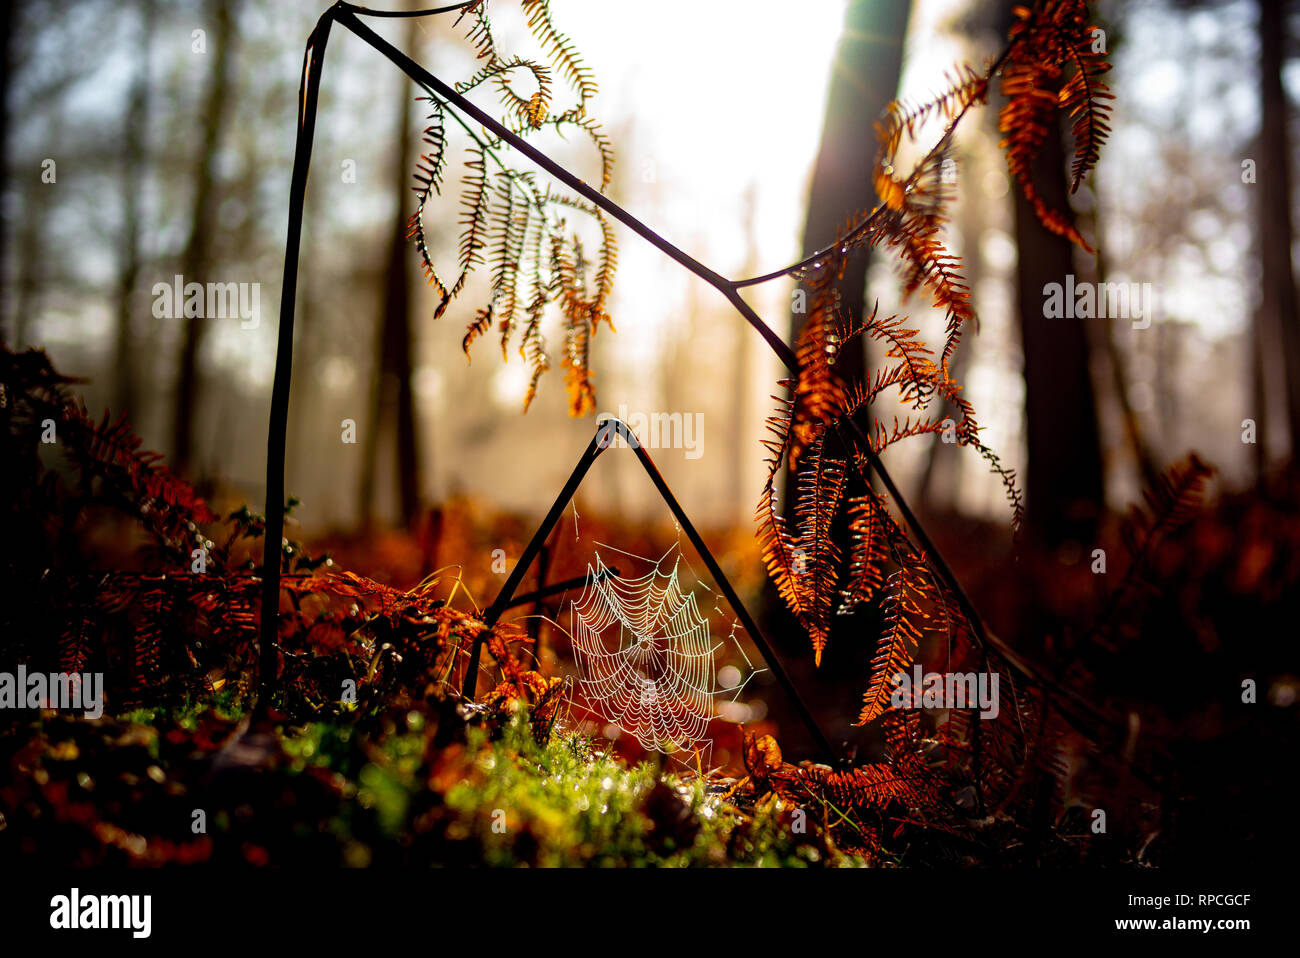 Beautiful misty colourful Autumnal scene of ferns in the NewForest with a connected spider web covered in dew with the sun breaking in the background. Stock Photo